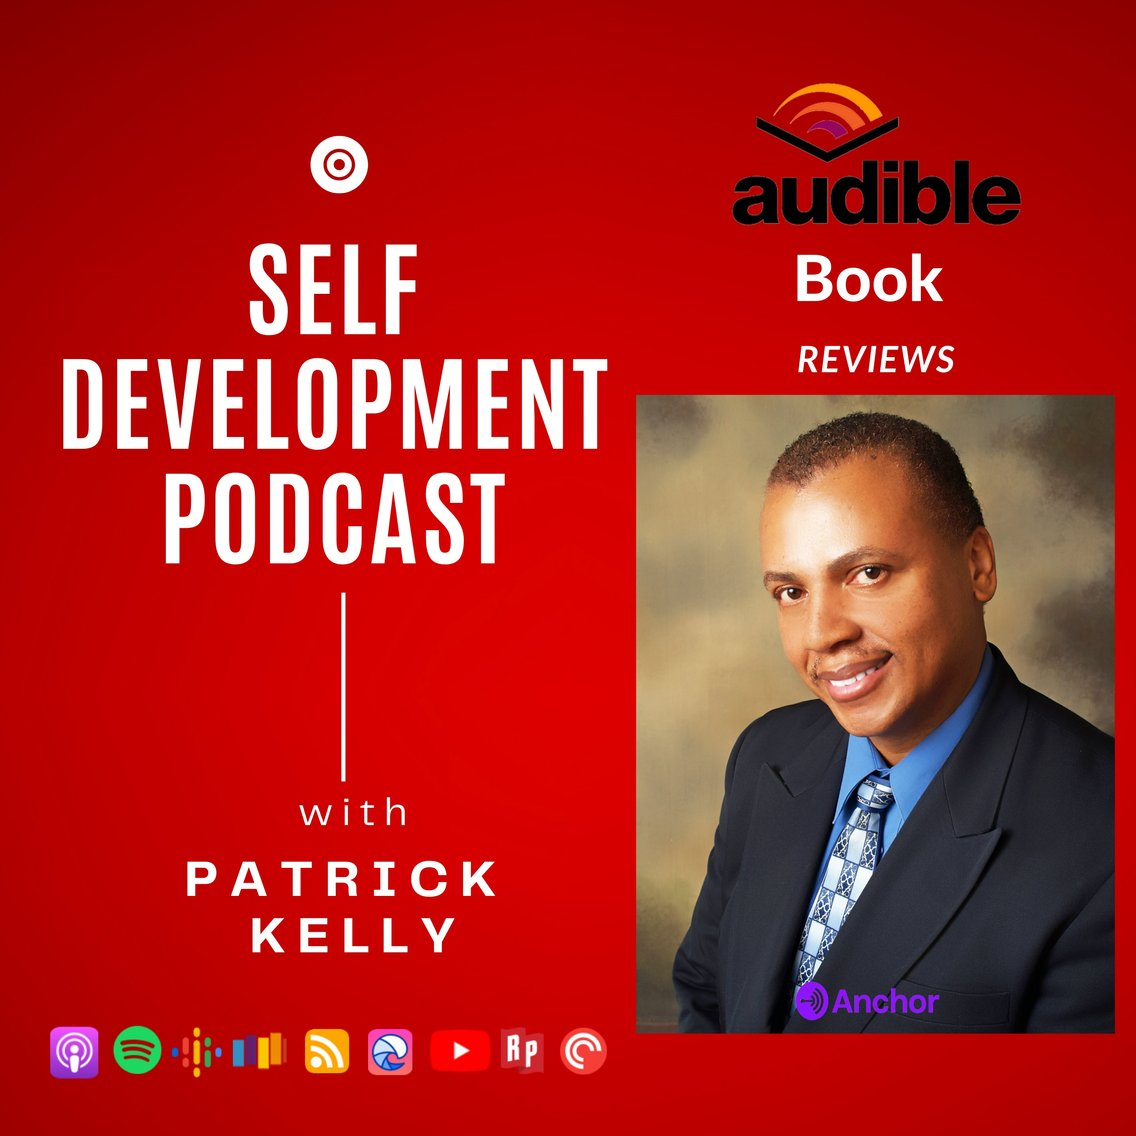 The Patrick Kelly Podcast For Self Development - Cover Image